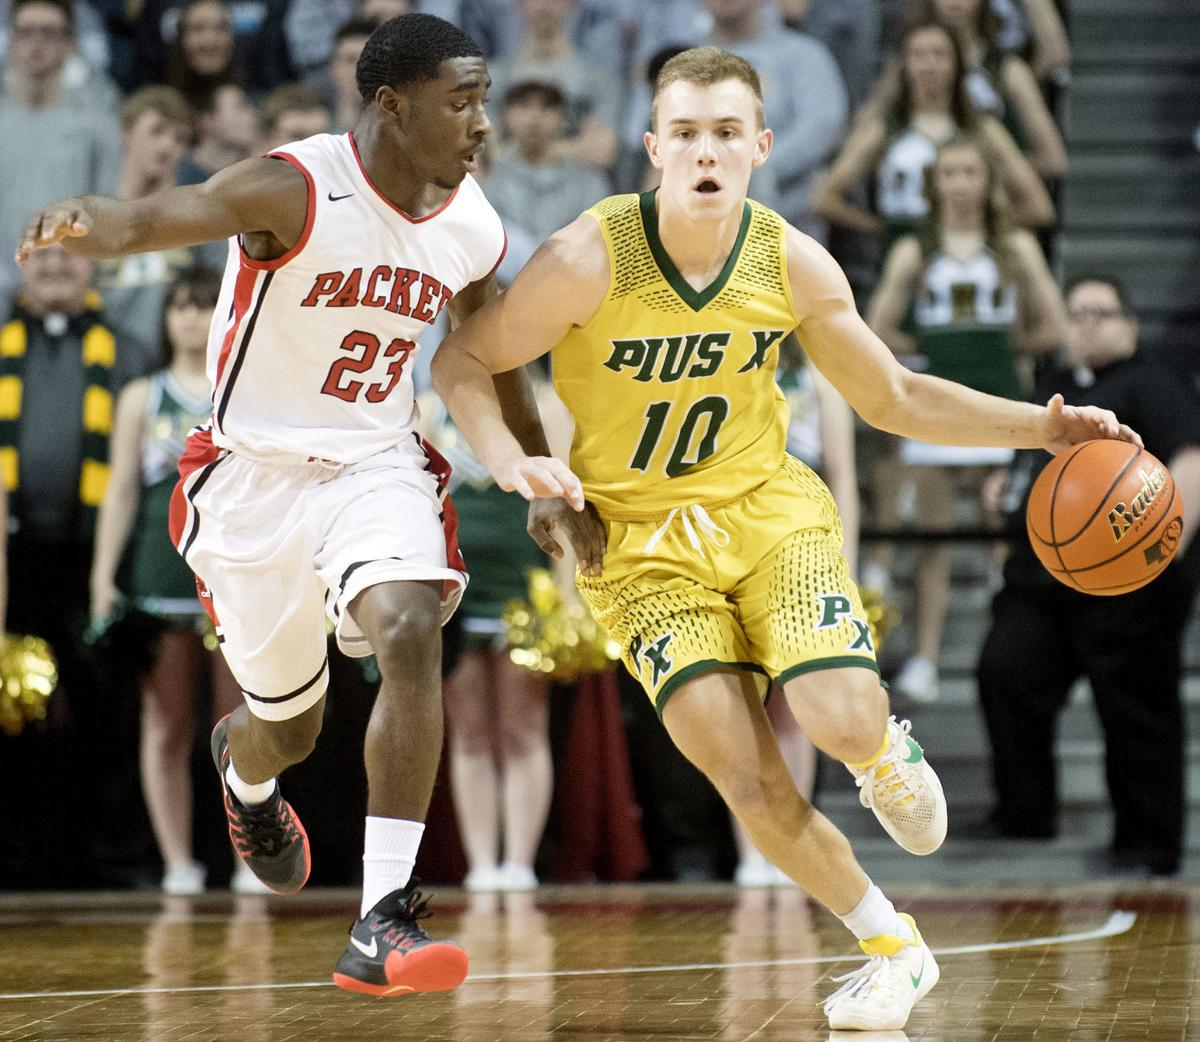 A state, Lincoln Pius X vs. Omaha South, 3/9